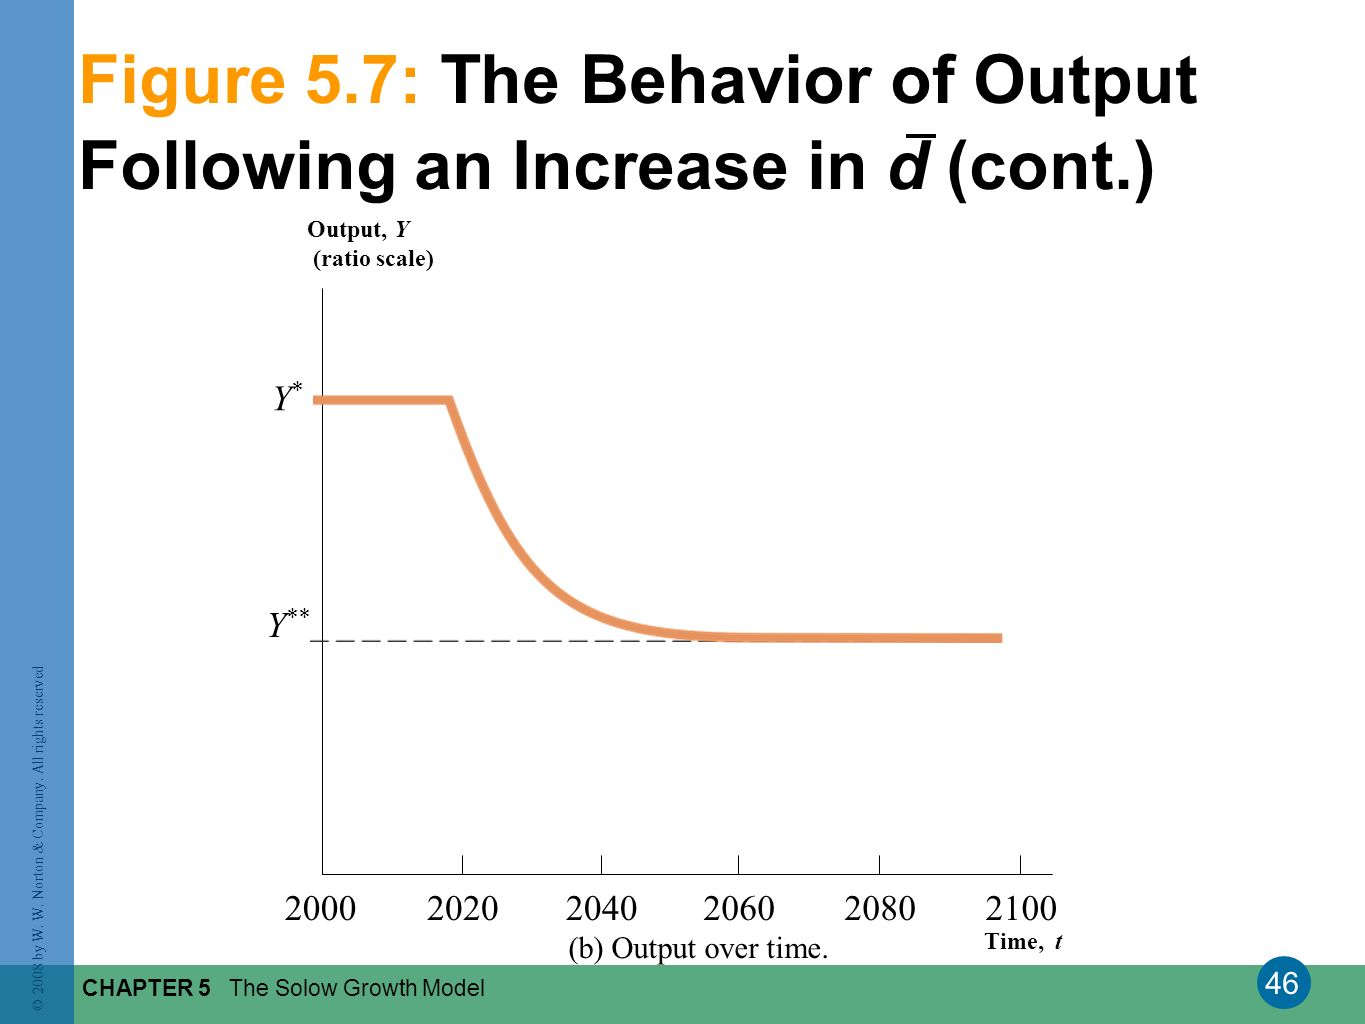 Figure 5.7: The Behavior of Output Following an Increase in d (cont.)